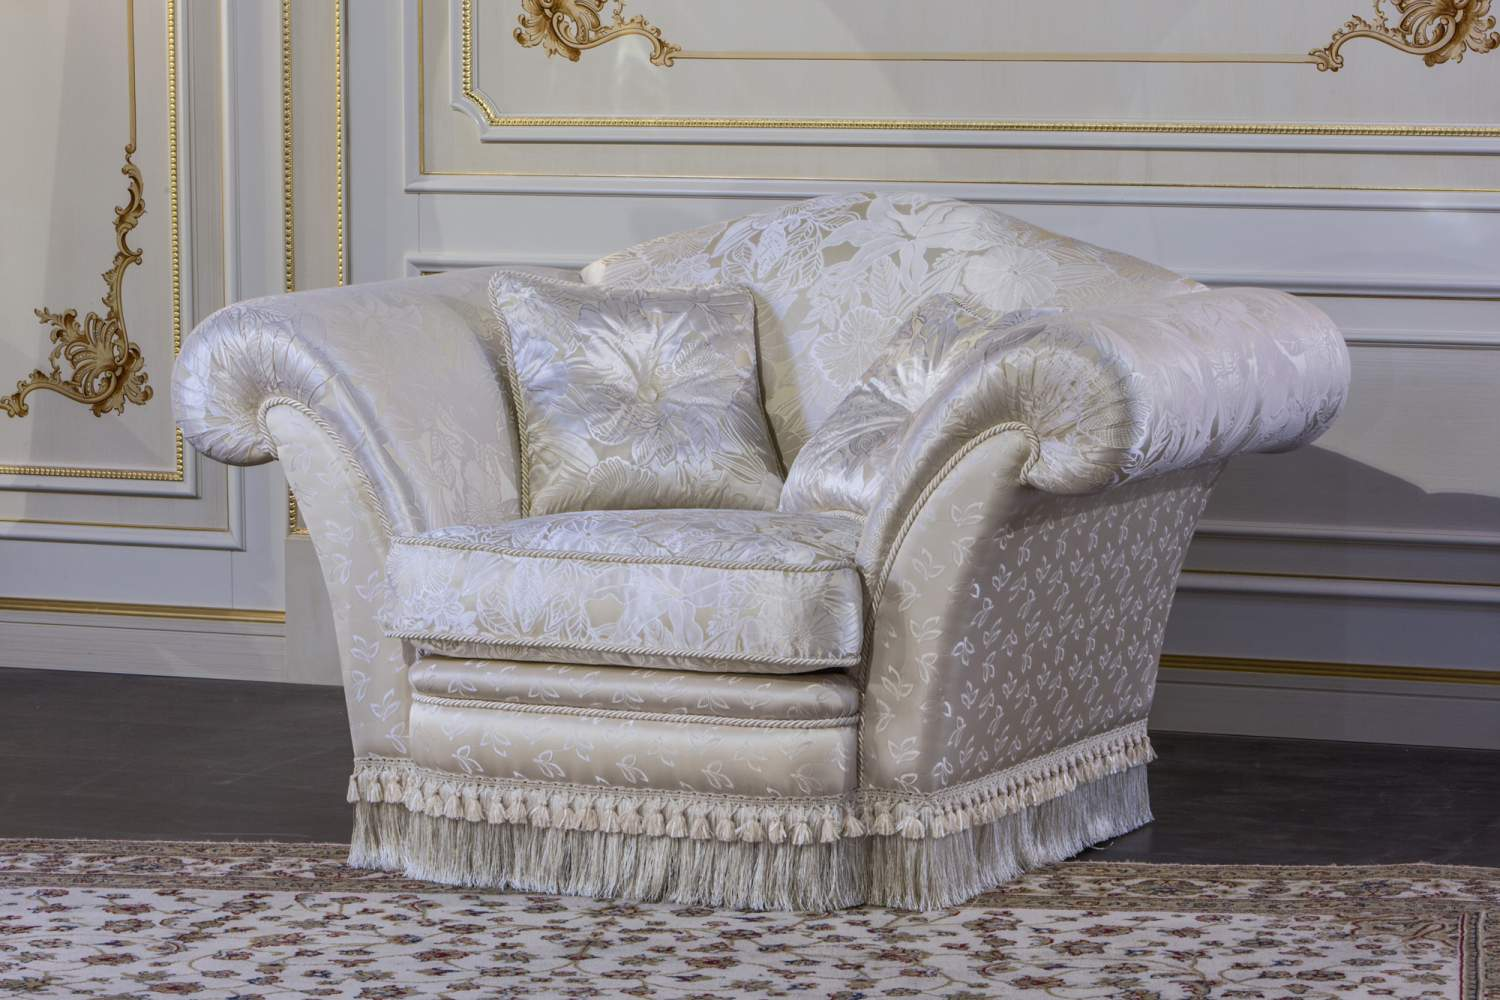 Armchair for a luxury living room Vanity